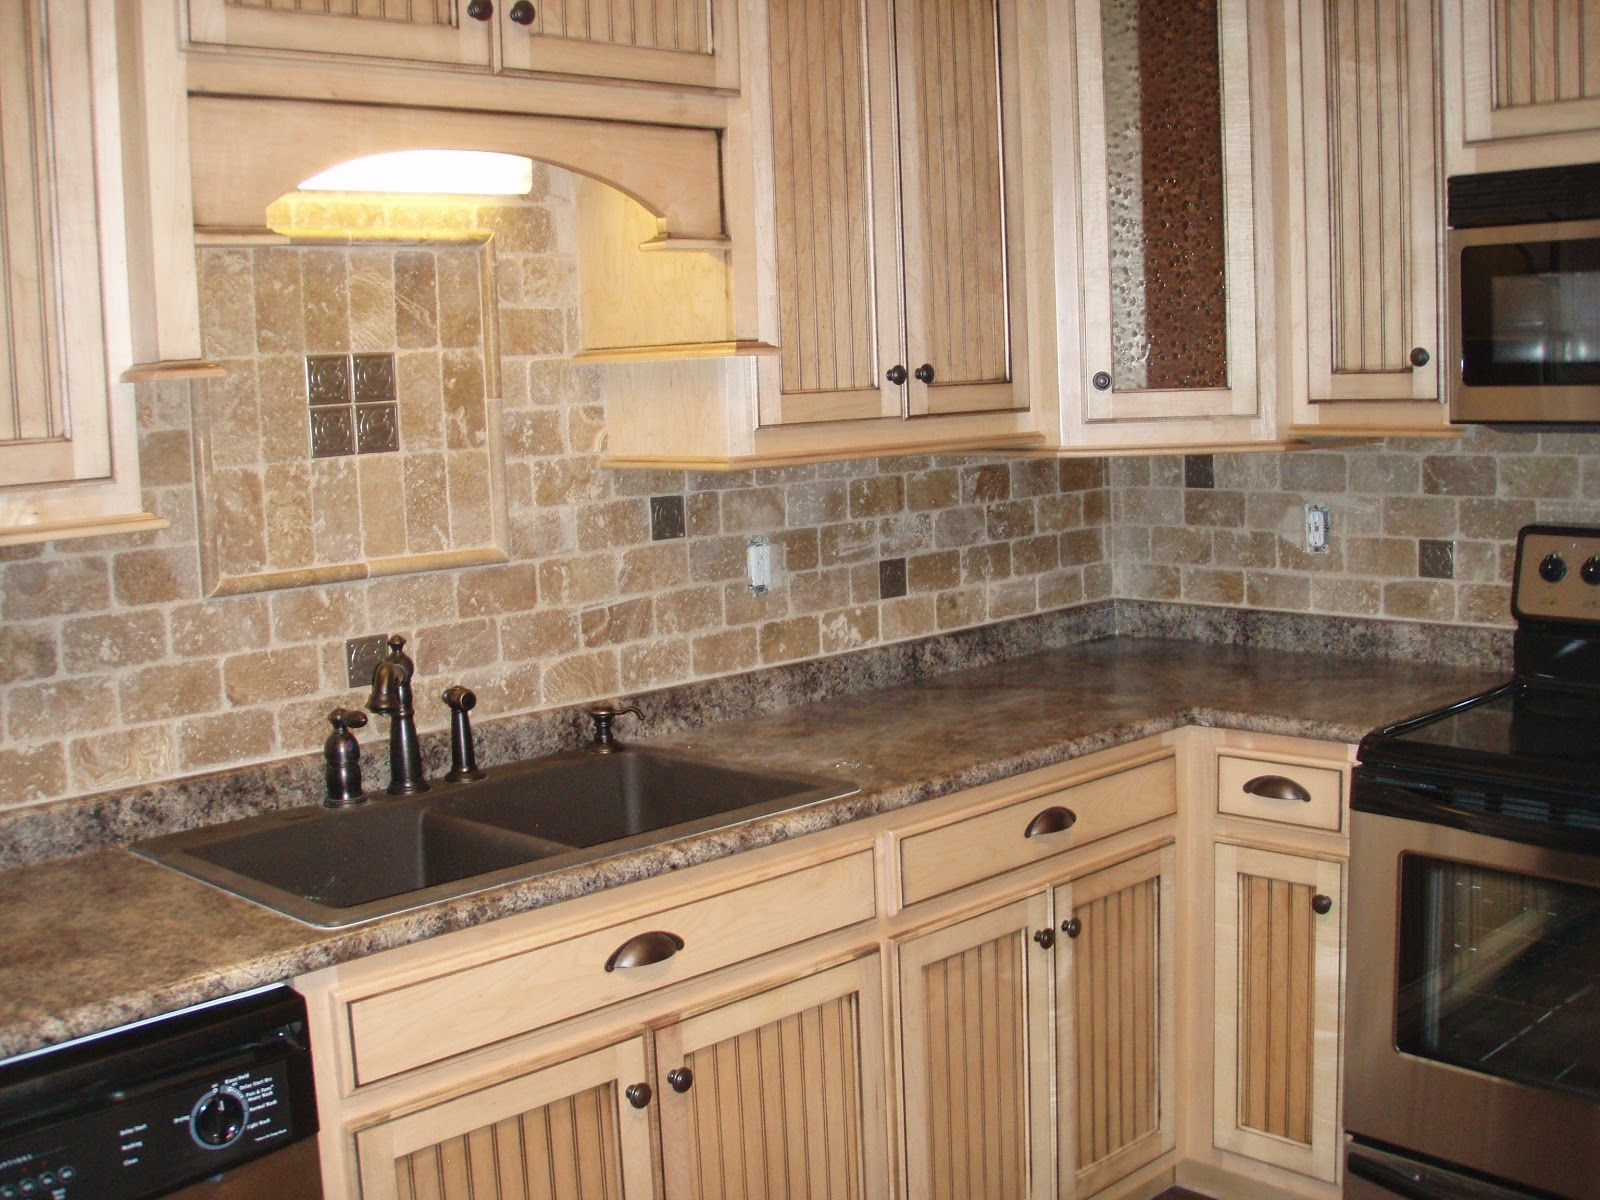 rustic white cabinets. Classic White Distressed Kitchen Cabinets Finished With Subway Stone Backsplash In L-shaped Country Decorations Rustic I